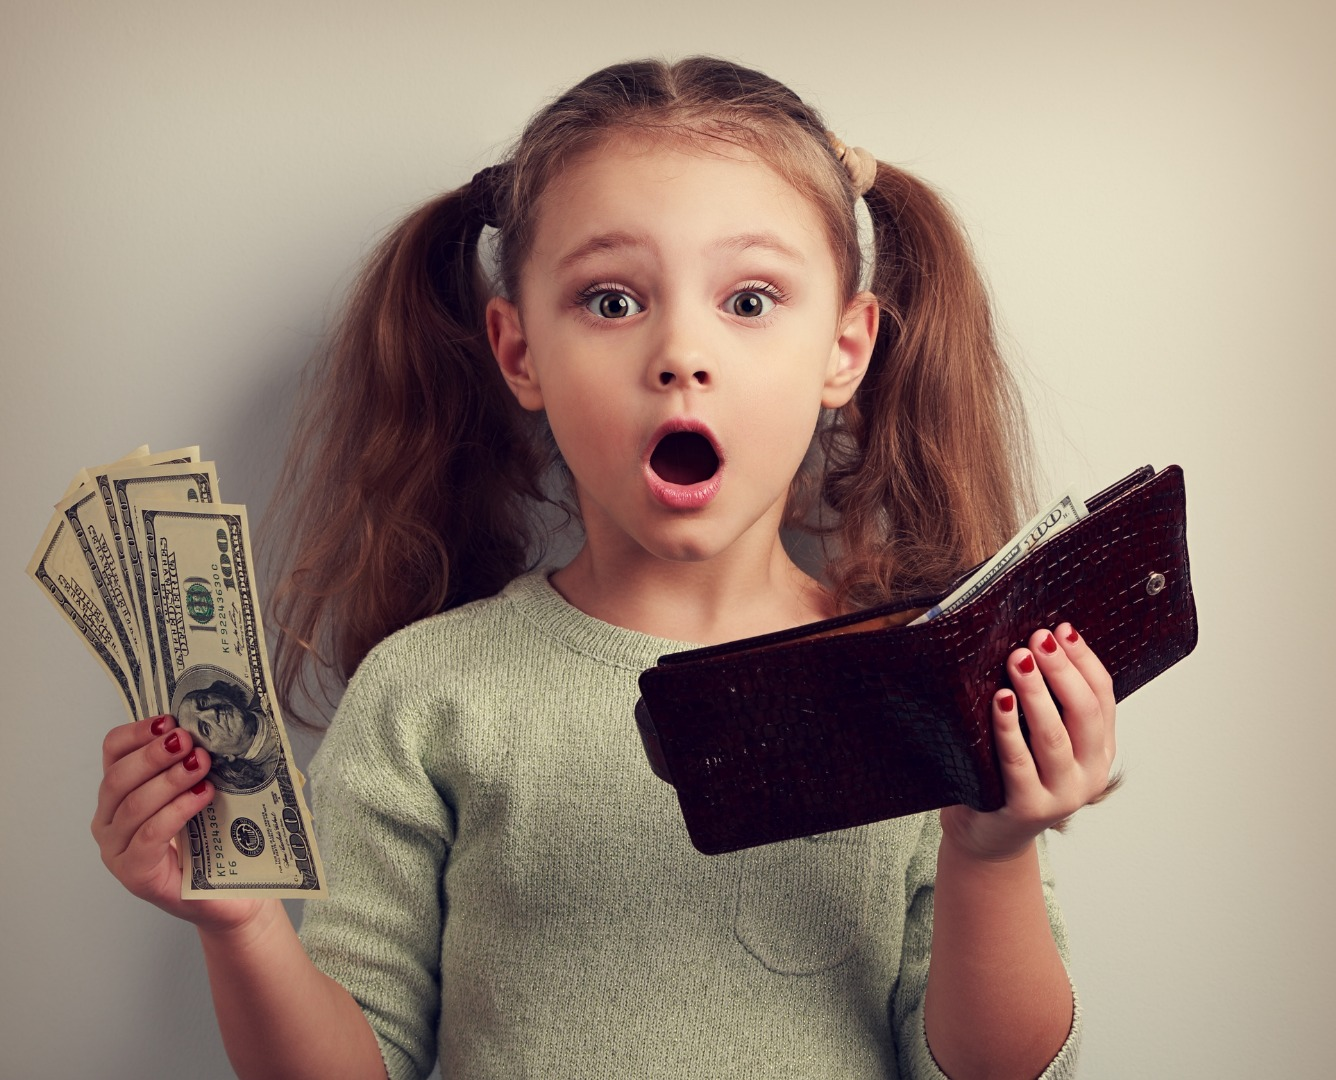 Do my daughters give pocket money?